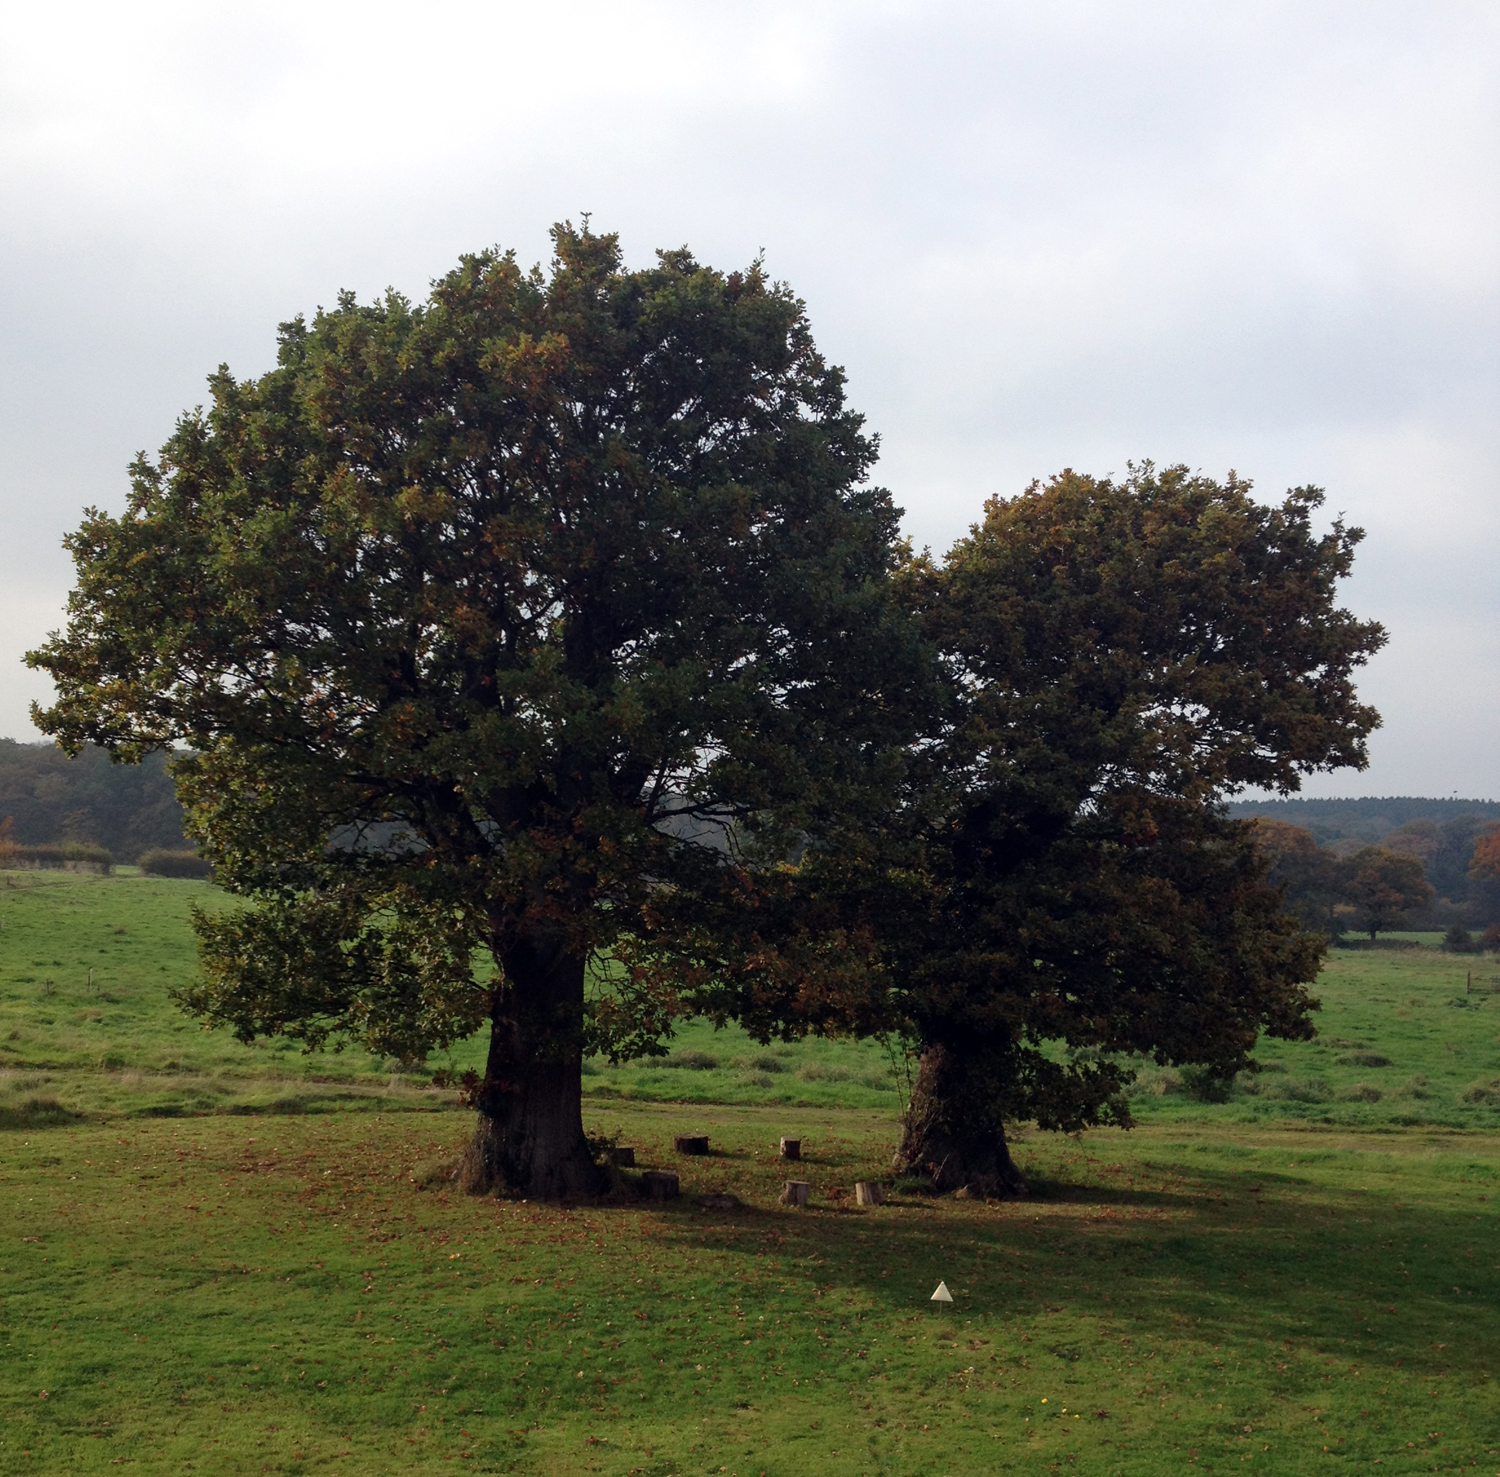 The majestic oak trees at 42 Acres